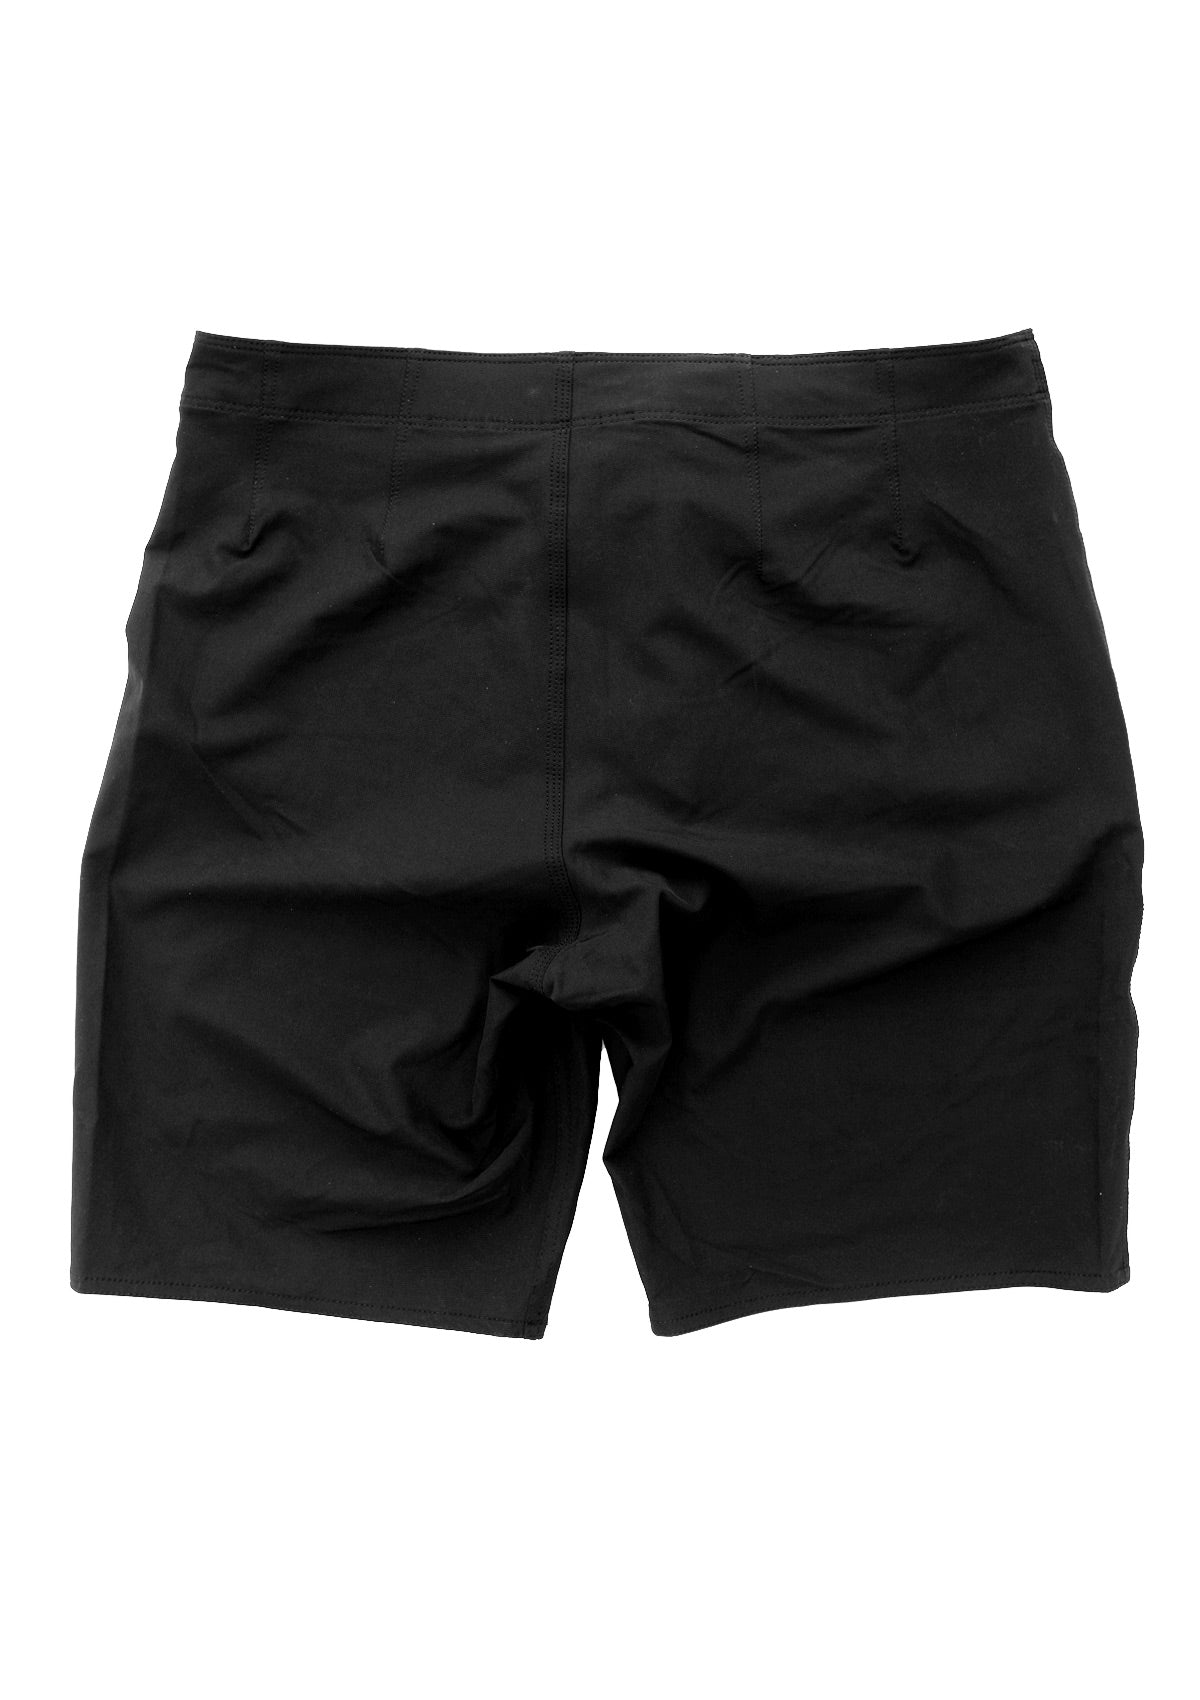 needessentials light weight mens surfing boardshorts non branded black swimming